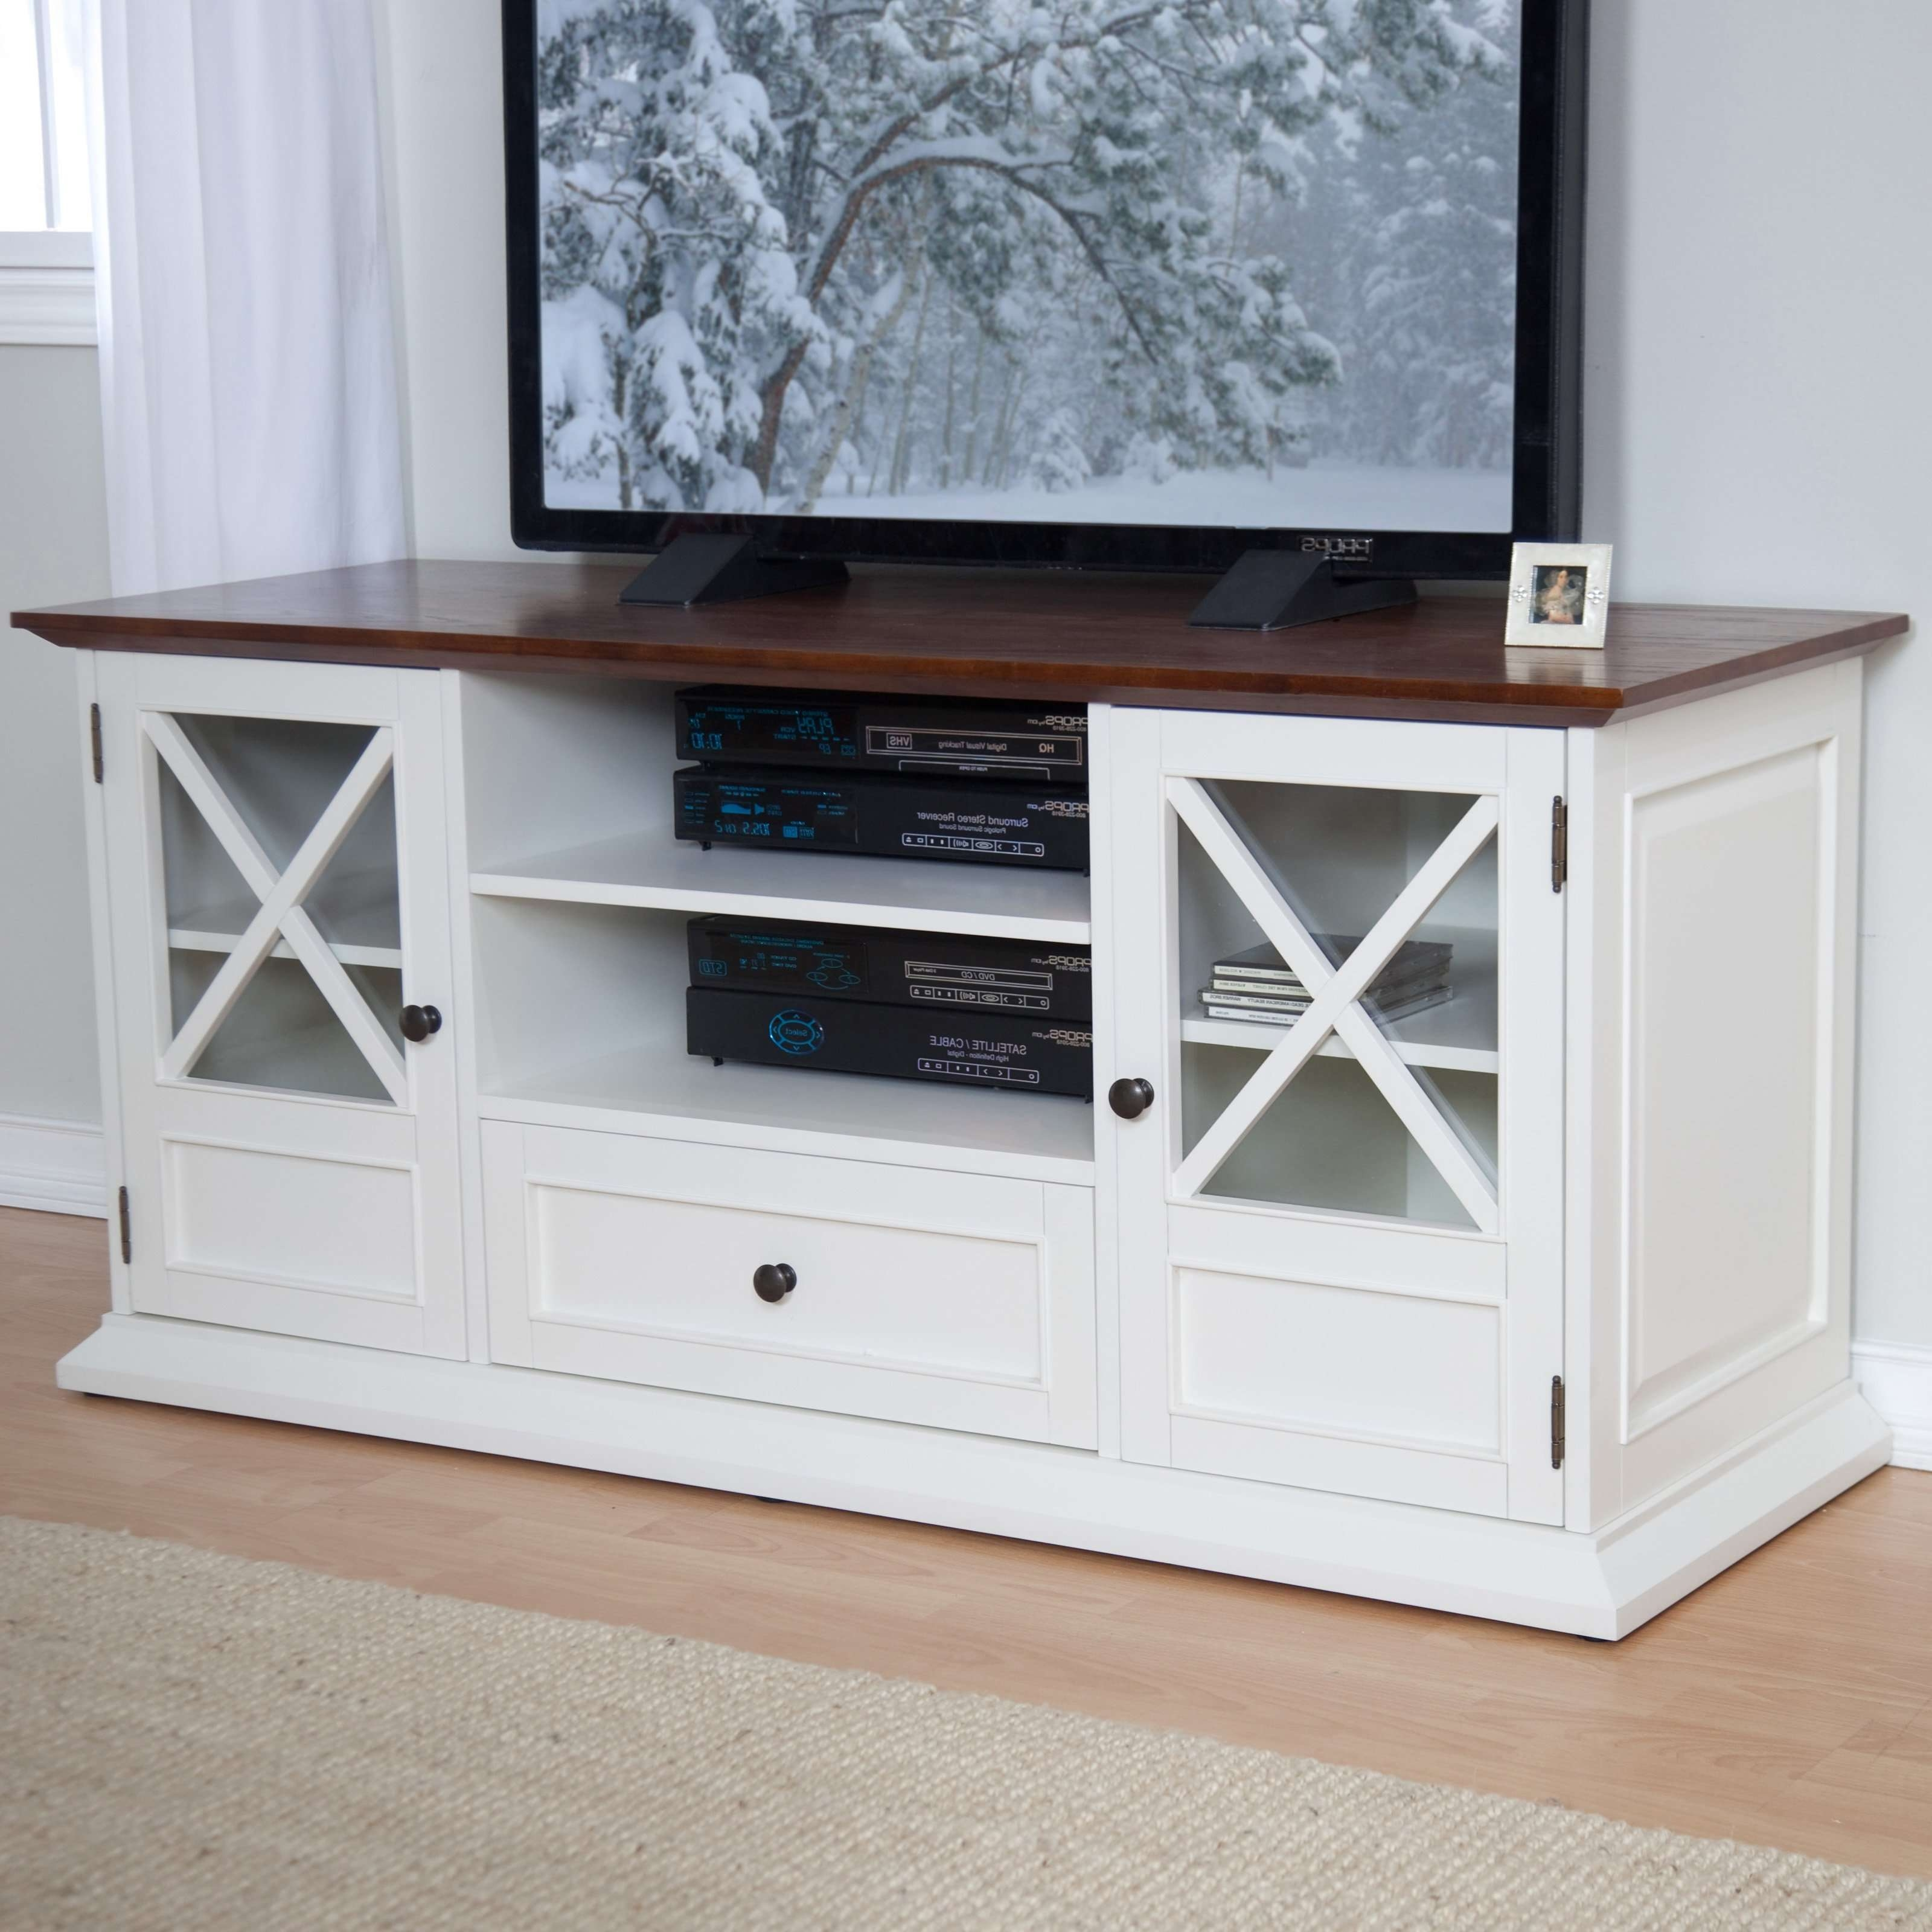 65 Inch Tv Stand With Simple 65 Inch Tv Stand Espresso With Single With Regard To Single Tv Stands (View 15 of 15)